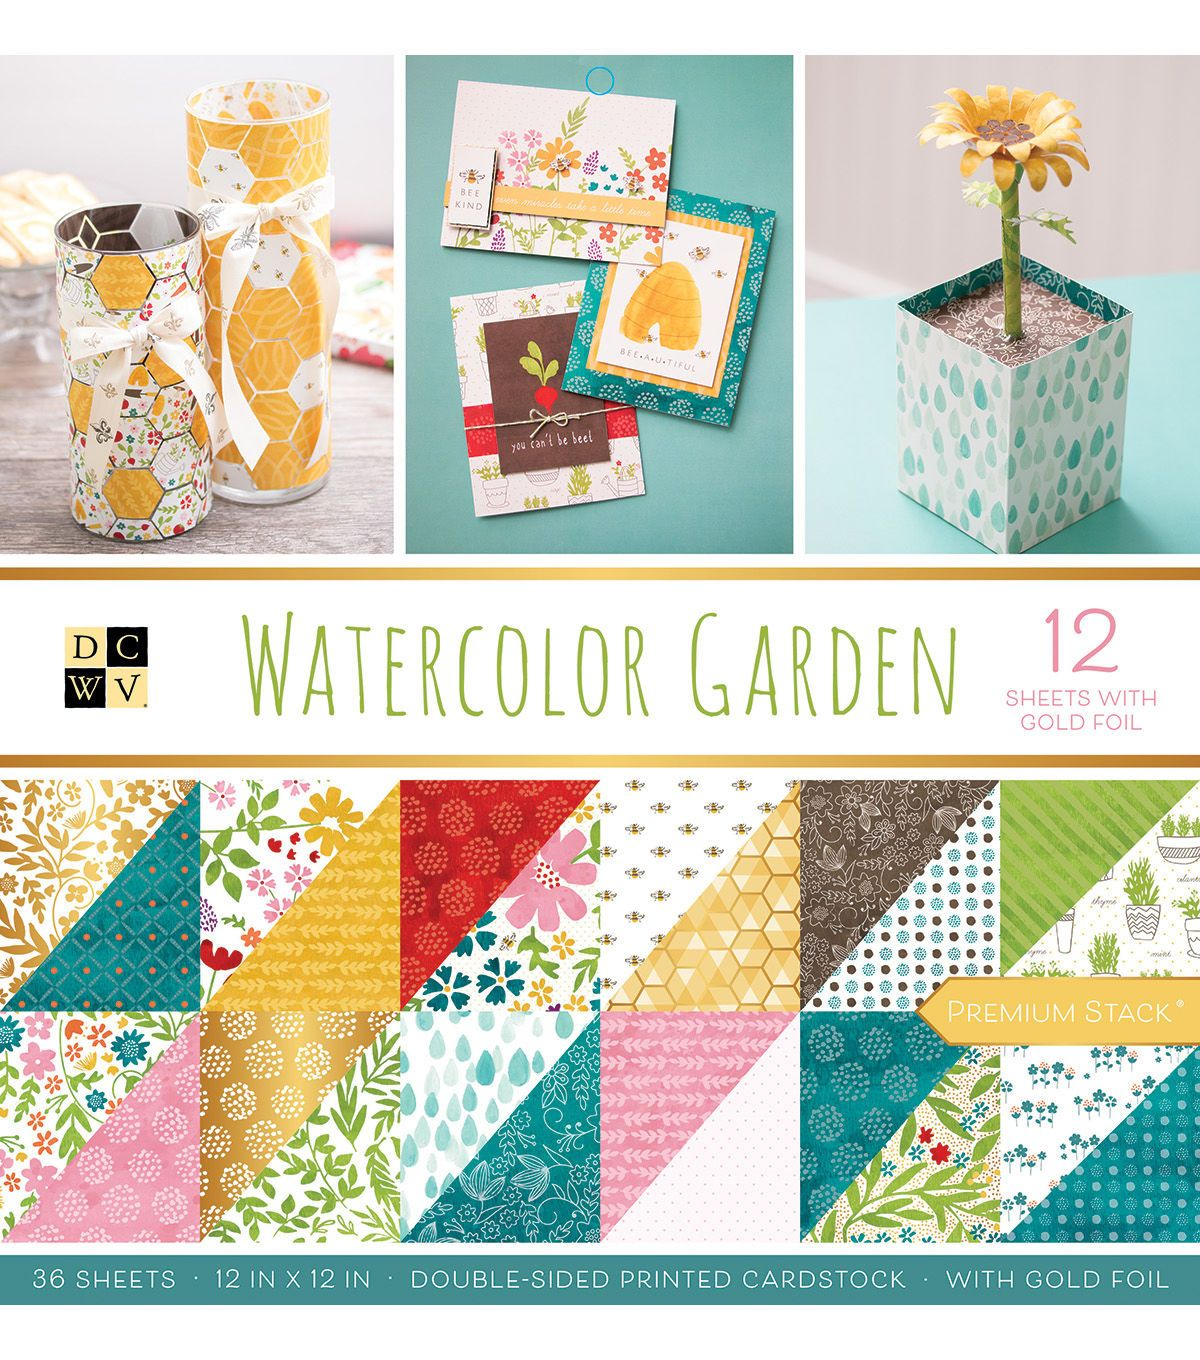 Dcwv 36 Pack 12 X12 Premium Stack Printed Cardstock Watercolor